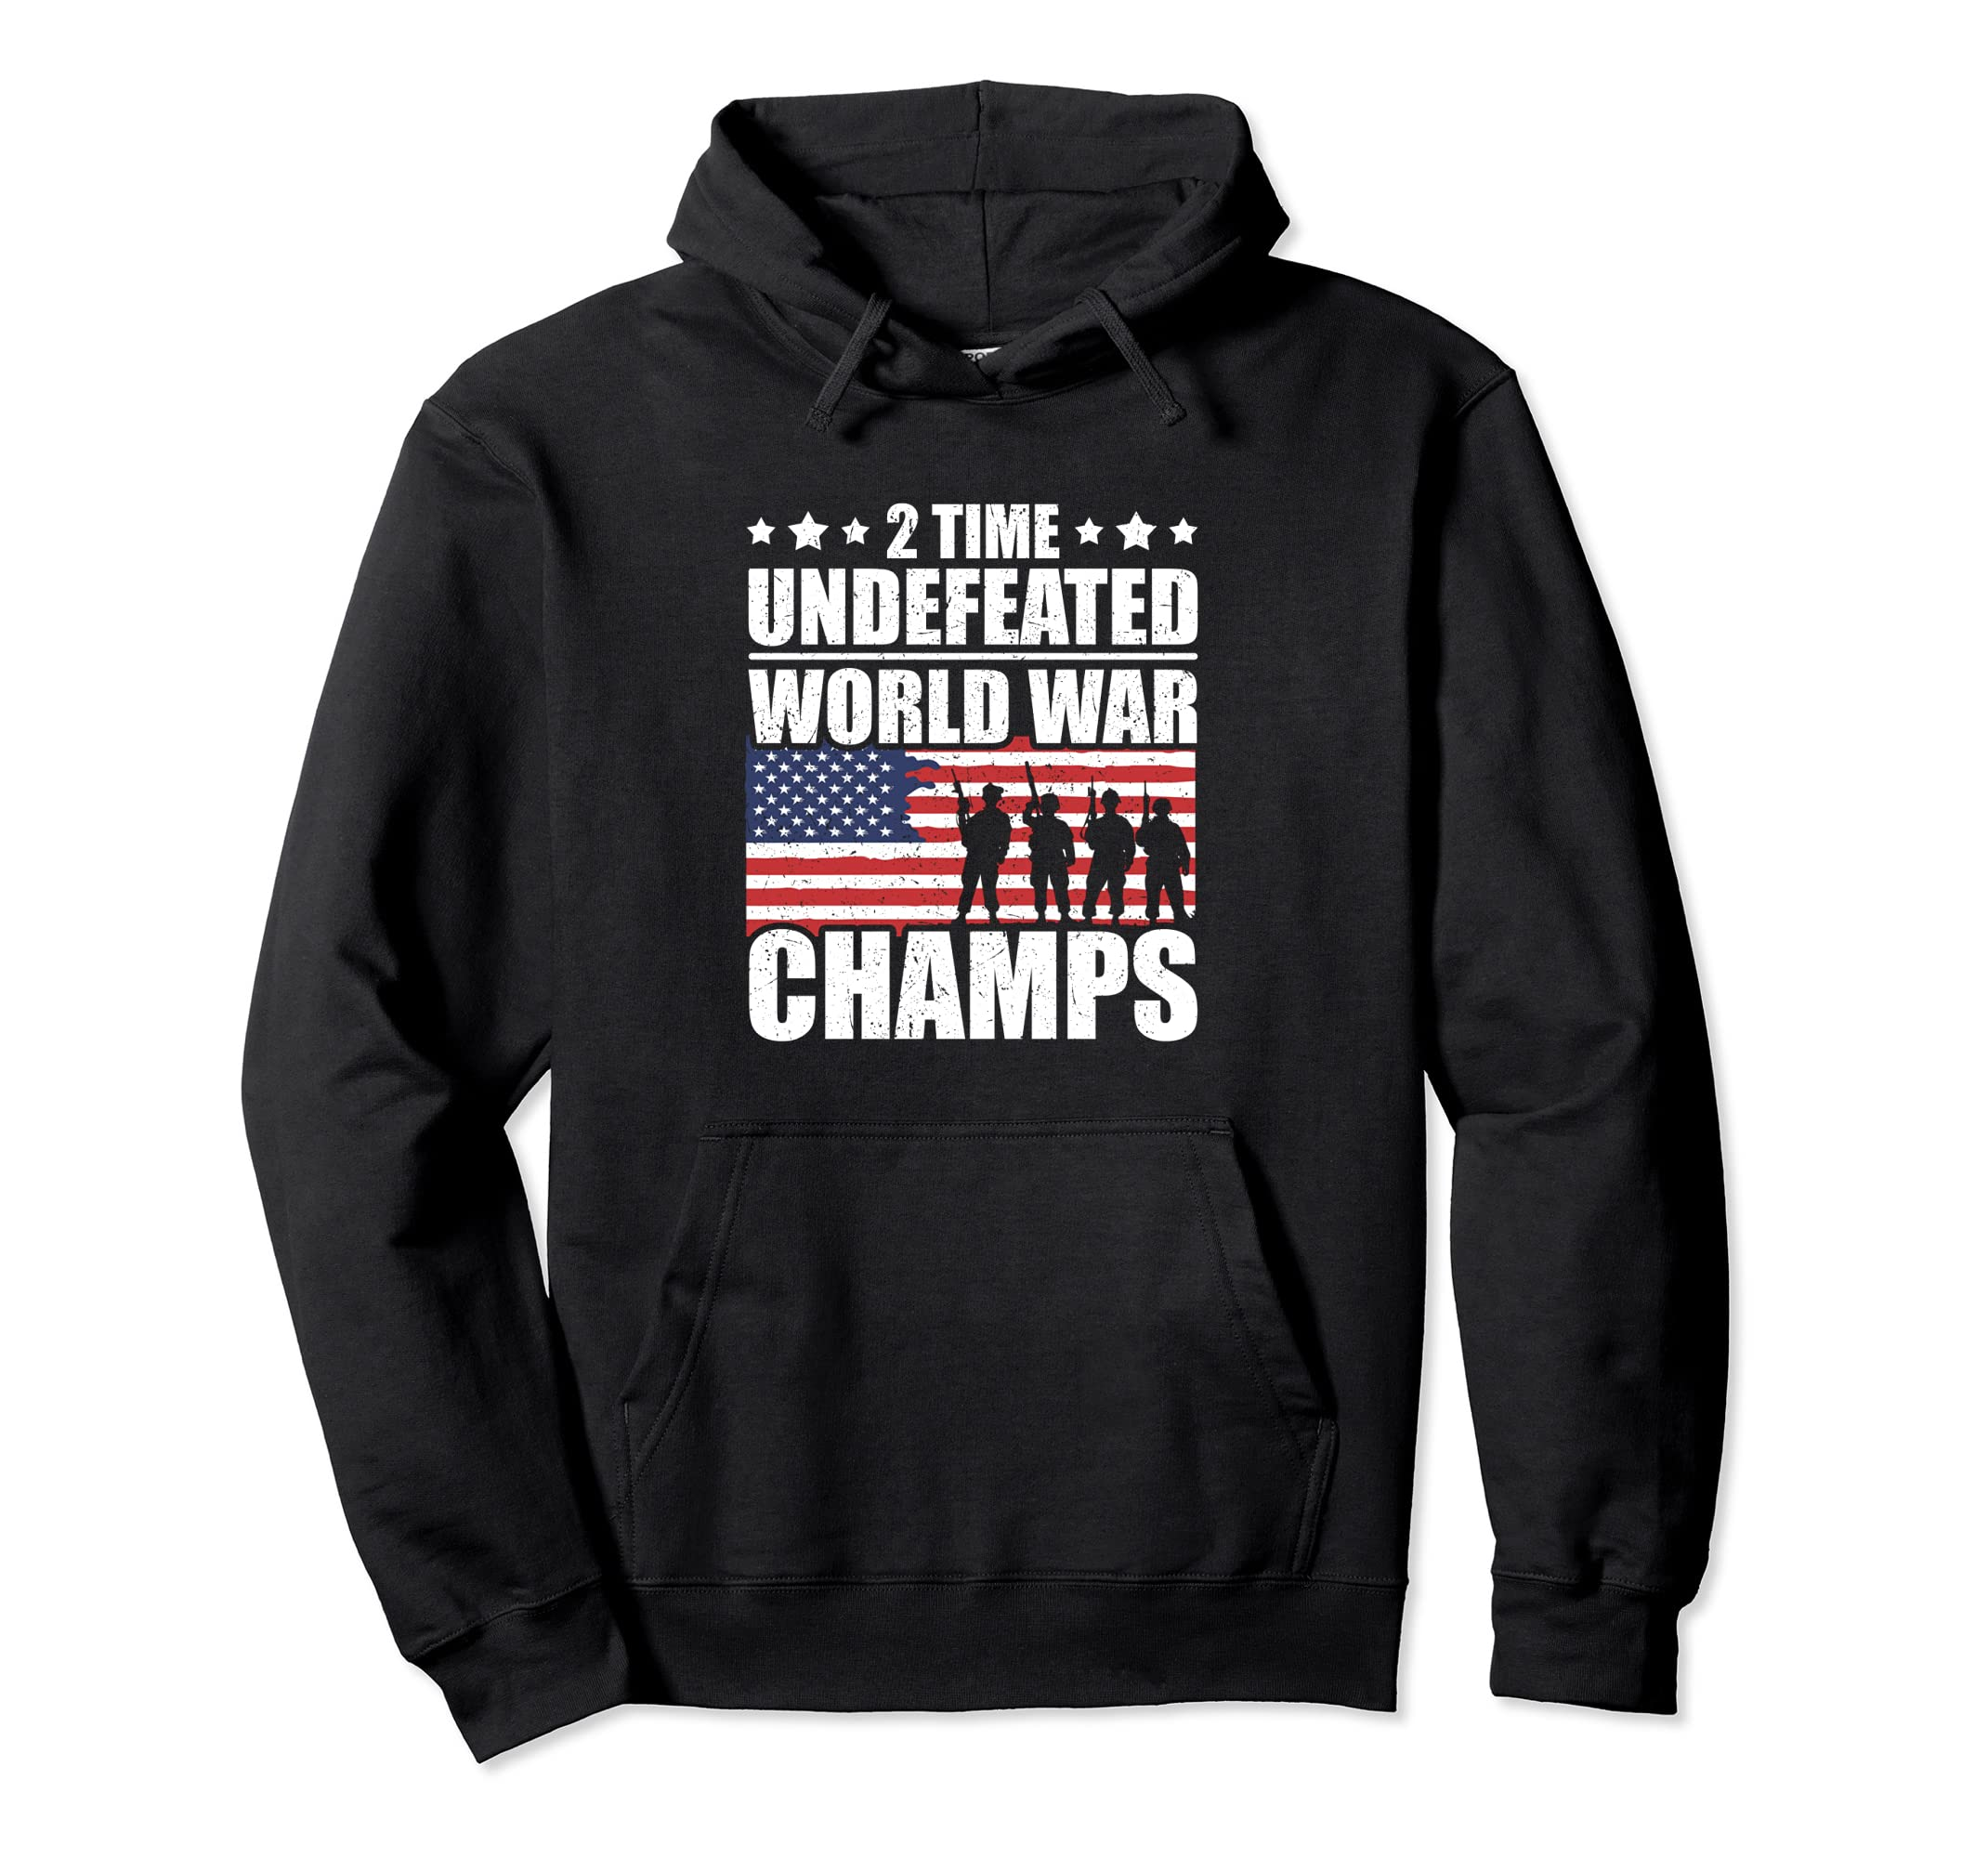 2 Time Undefeated World War Champs Hoodie Flag Hoodie ANZ